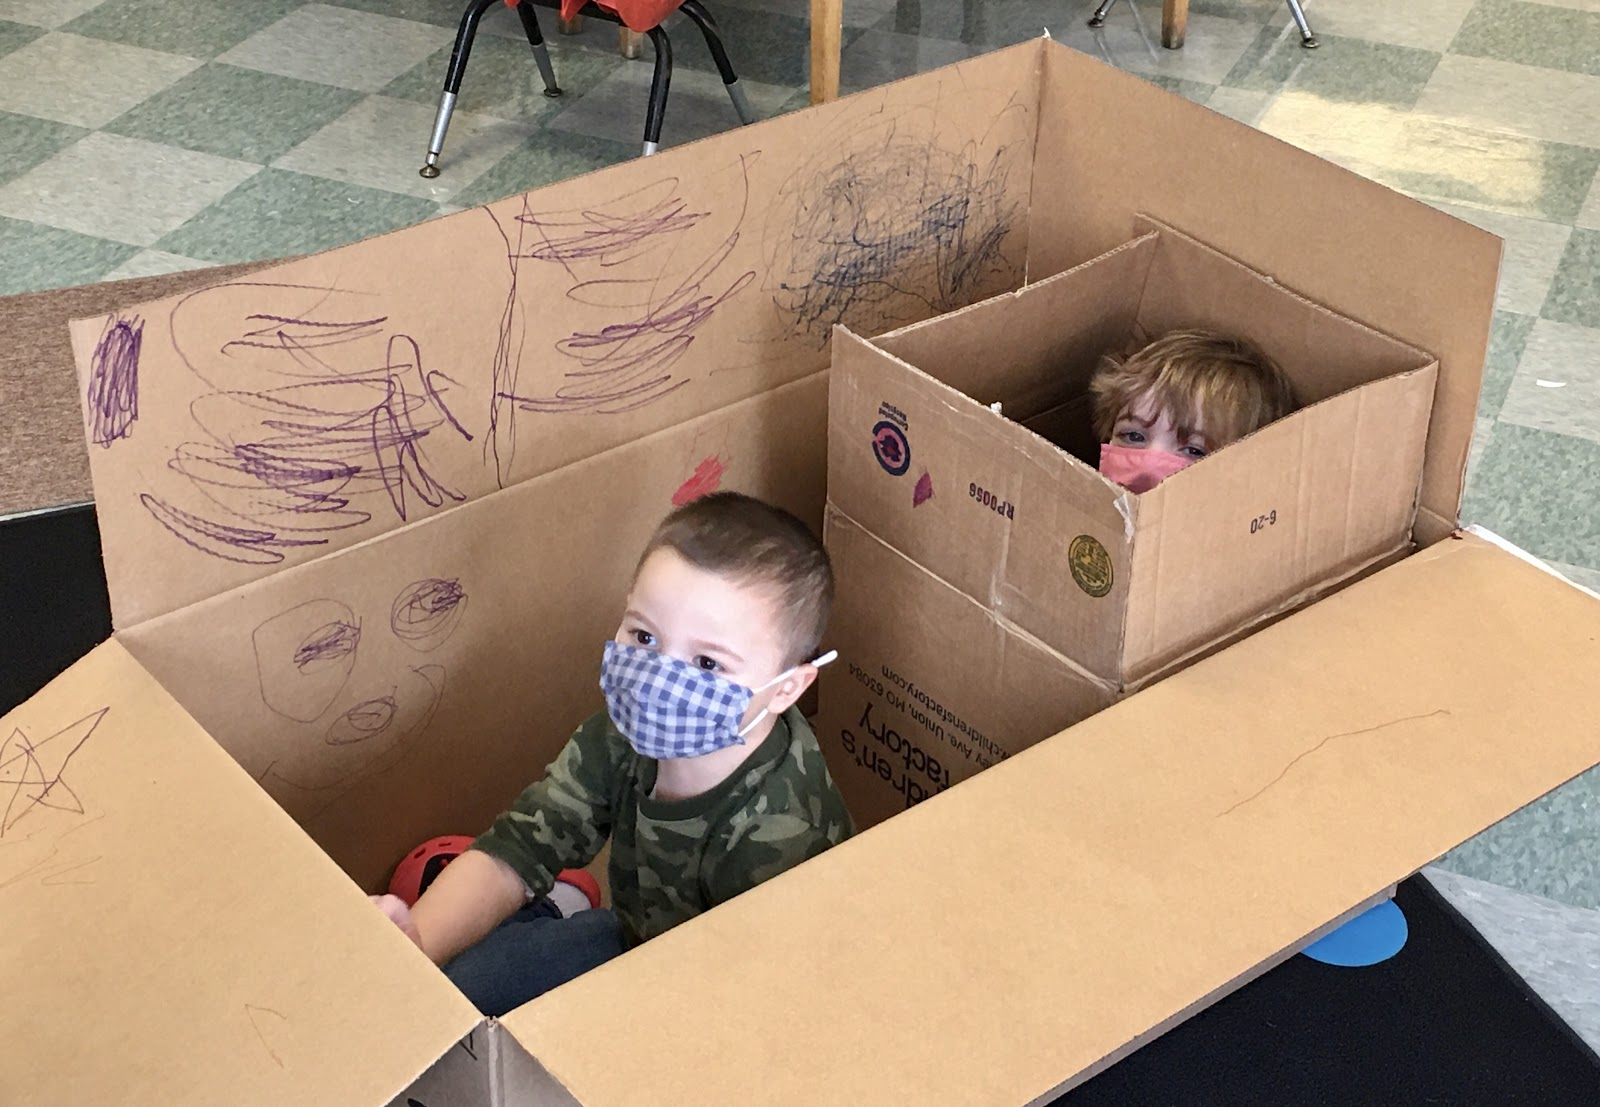 masked students sitting in cardboard boxes